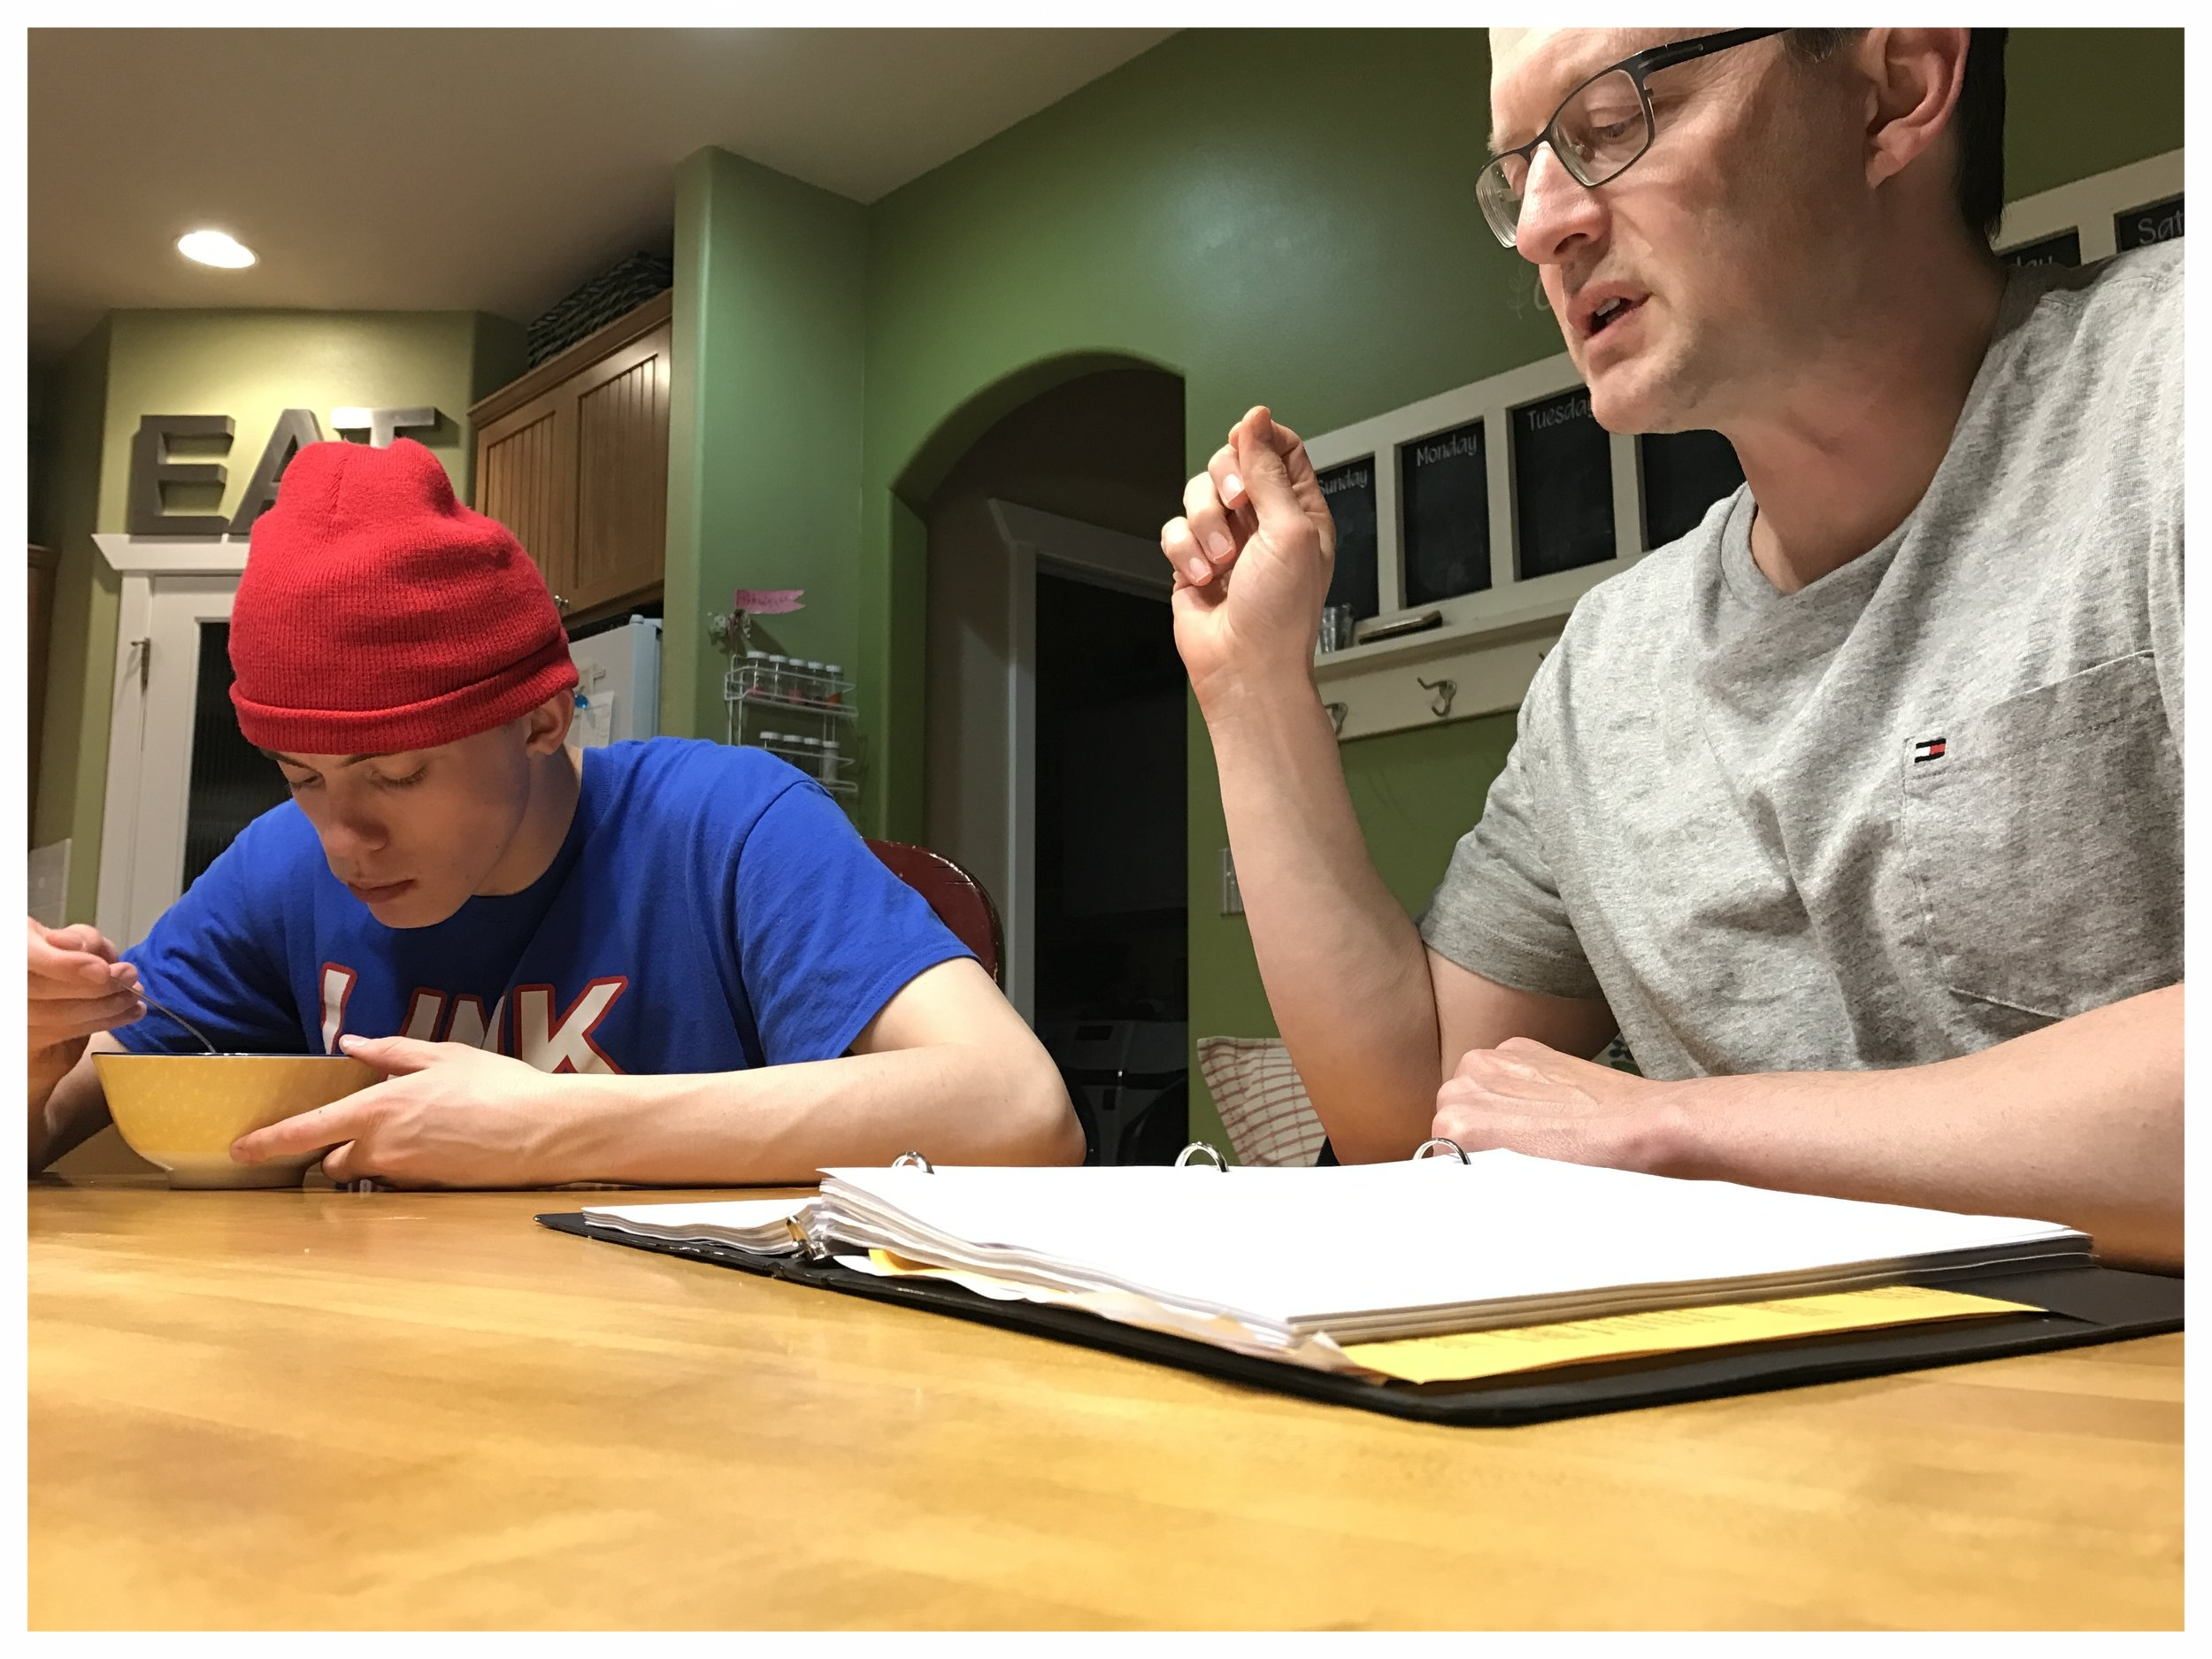 One of the last photos I took today. Geoff and Trey rehearsing his lines for the next CVHS play.